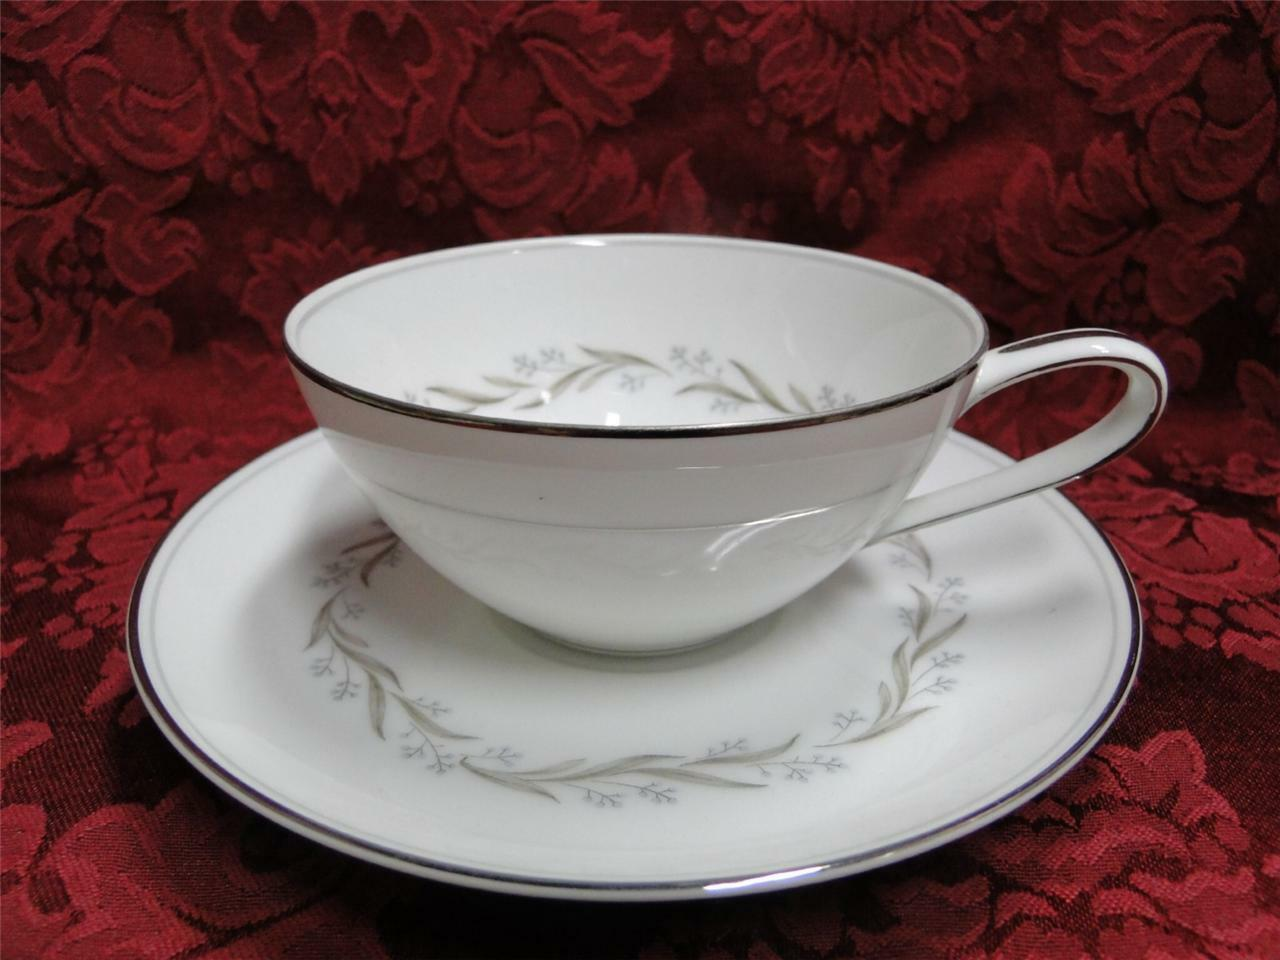 Noritake Almont, 6125, Blue Berries, Gray Leaves: Cup & Saucer Set (s)